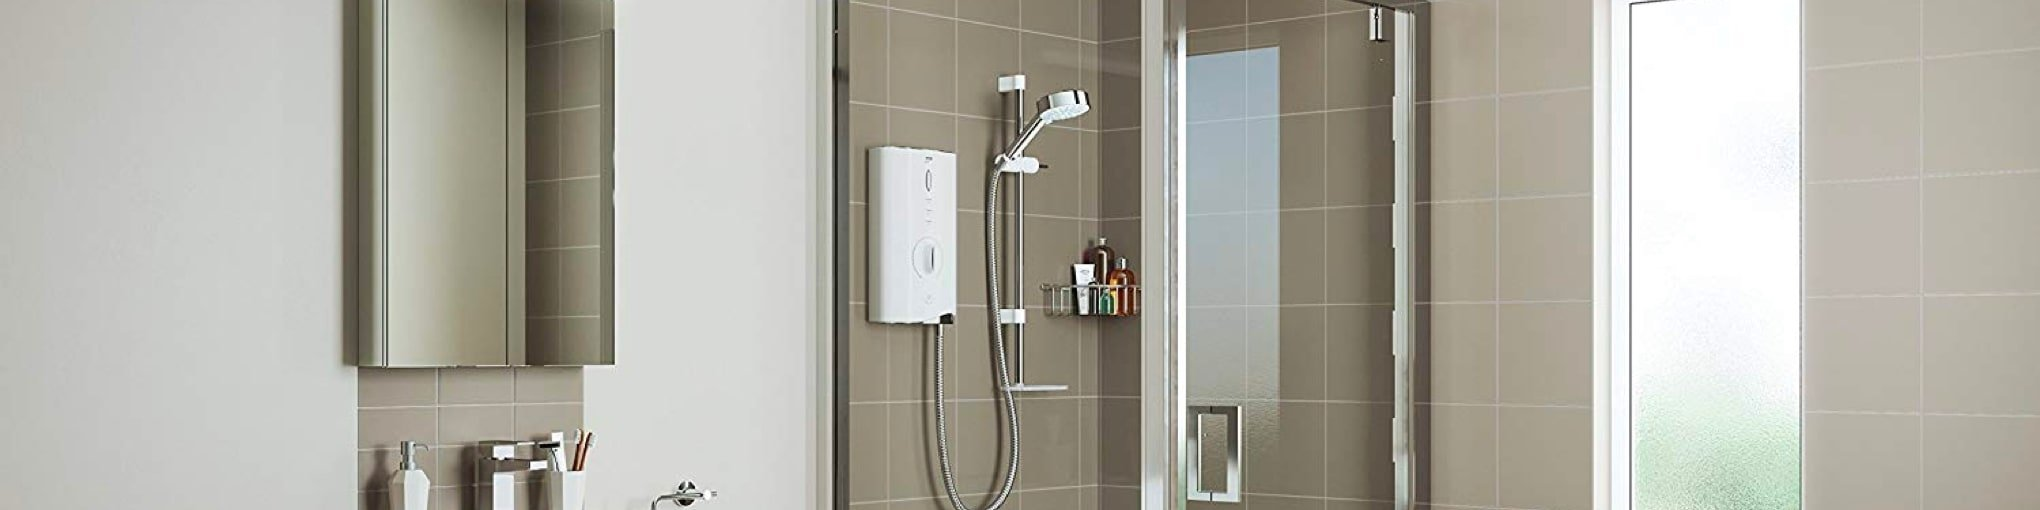 Alert Electrical - Showers & Boilers